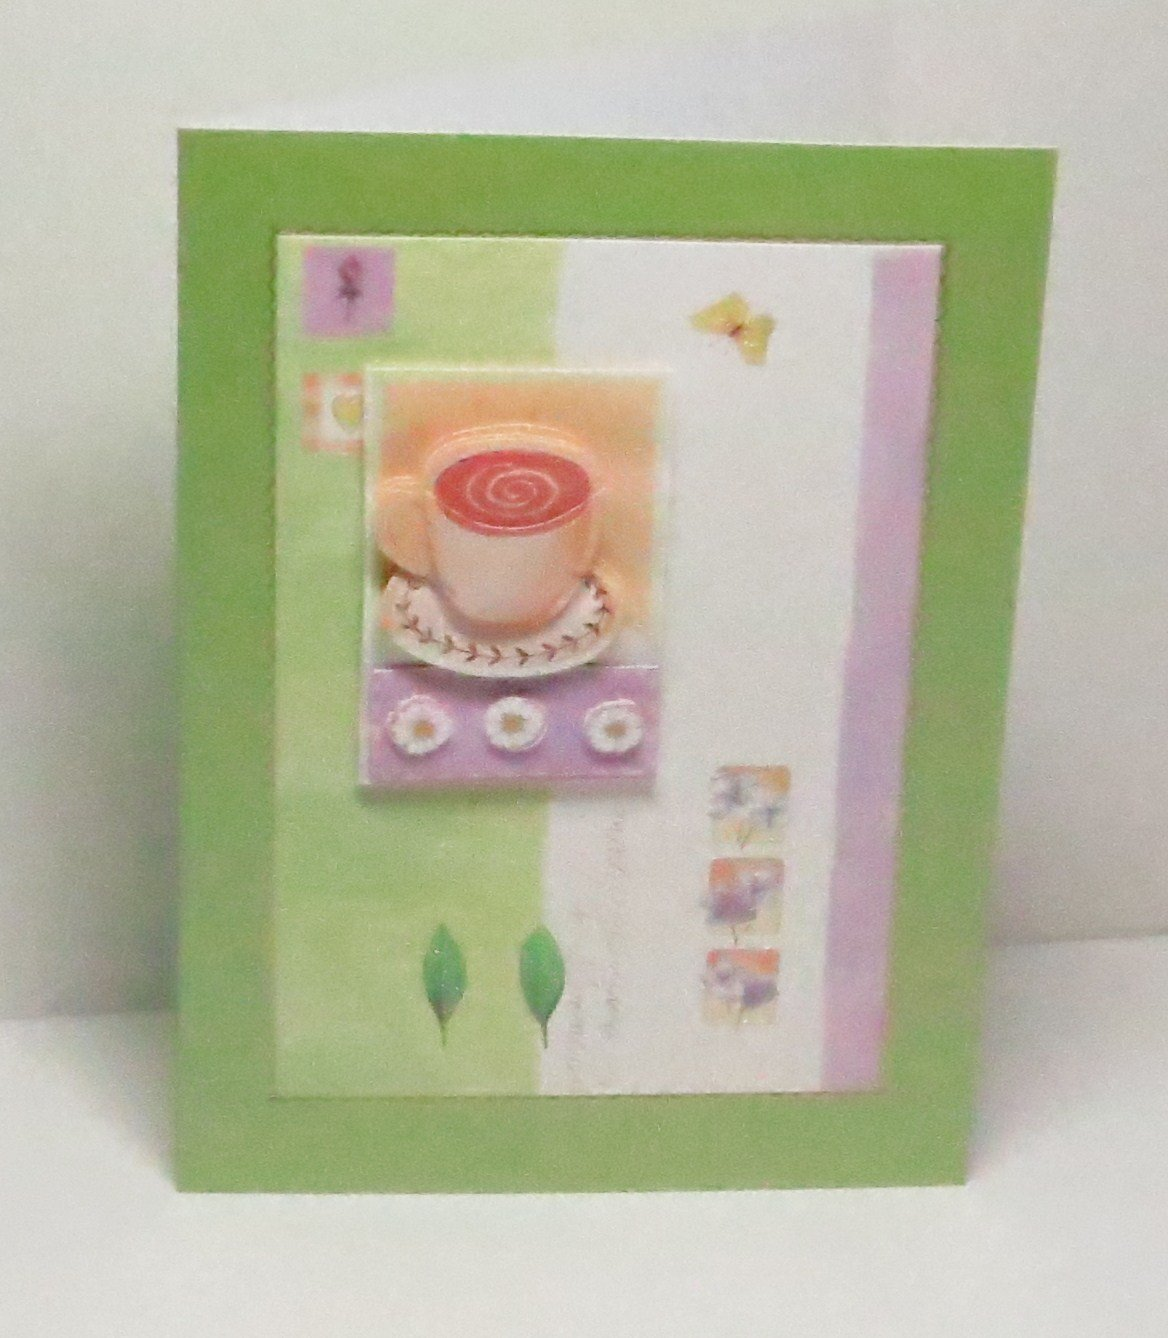 Leaves /& Butterfly Blank Greeting Card with Glittered Highlights /& Gold Border on Lime Green Pearlescent Base Limited Edition For Any Occasion Handmade 3D Cup of Tea with Flowers